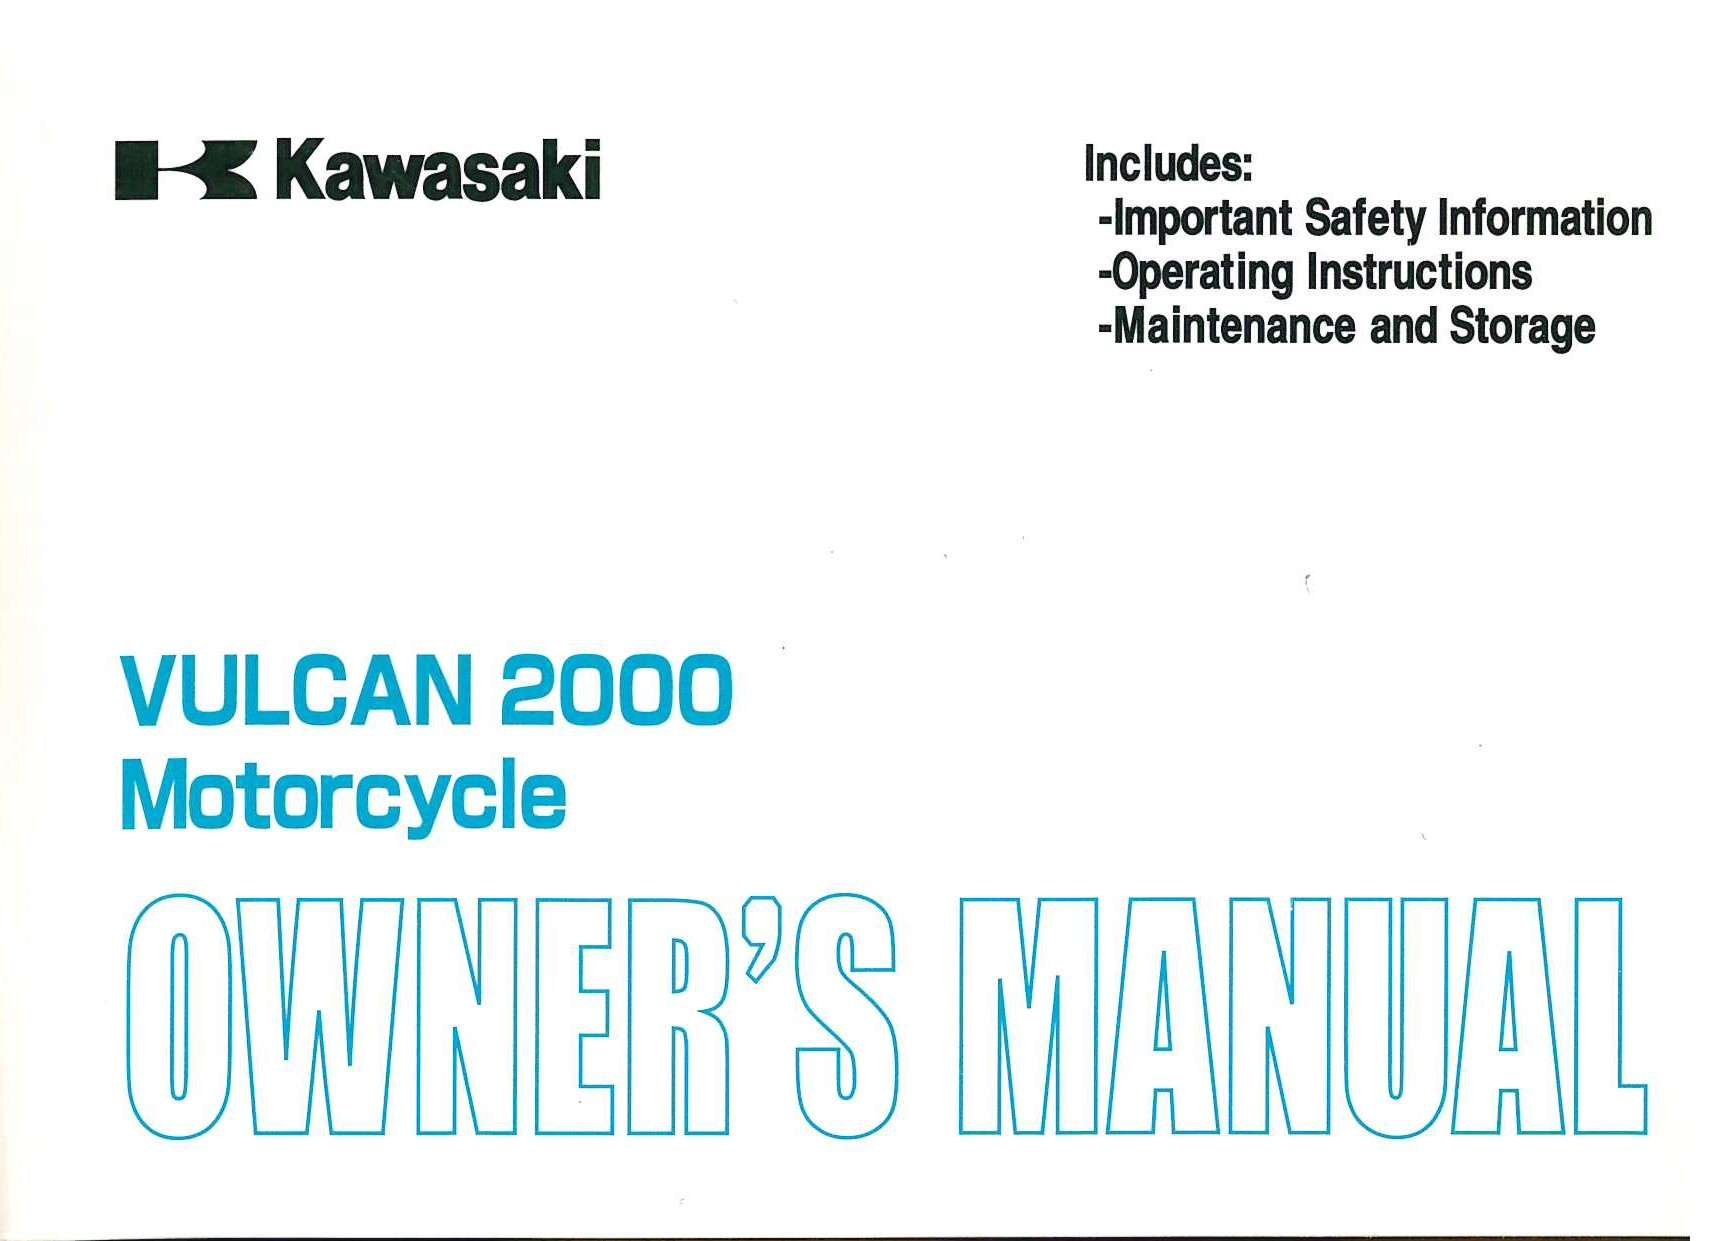 2007 Kawasaki Zzr600 Service Manual Today Guide Trends Sample 2004 Ninja 636 Engine Diagram Zzr Wiring Hp Top Speed